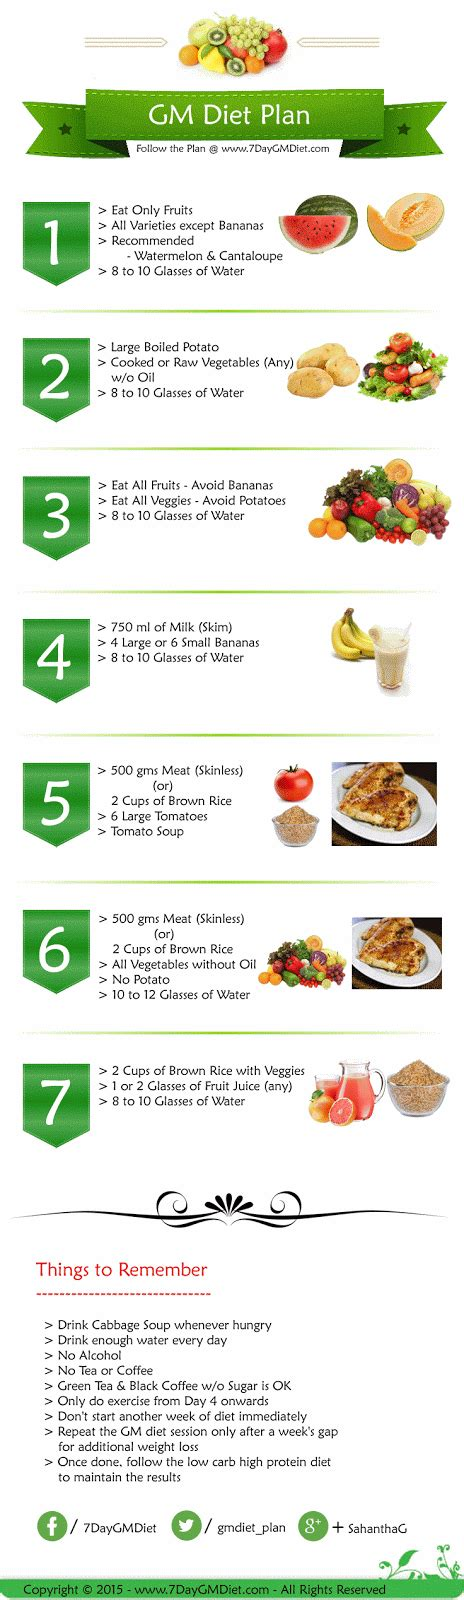 weight loss 7 day plan diet plan weight loss 7 days diet plan